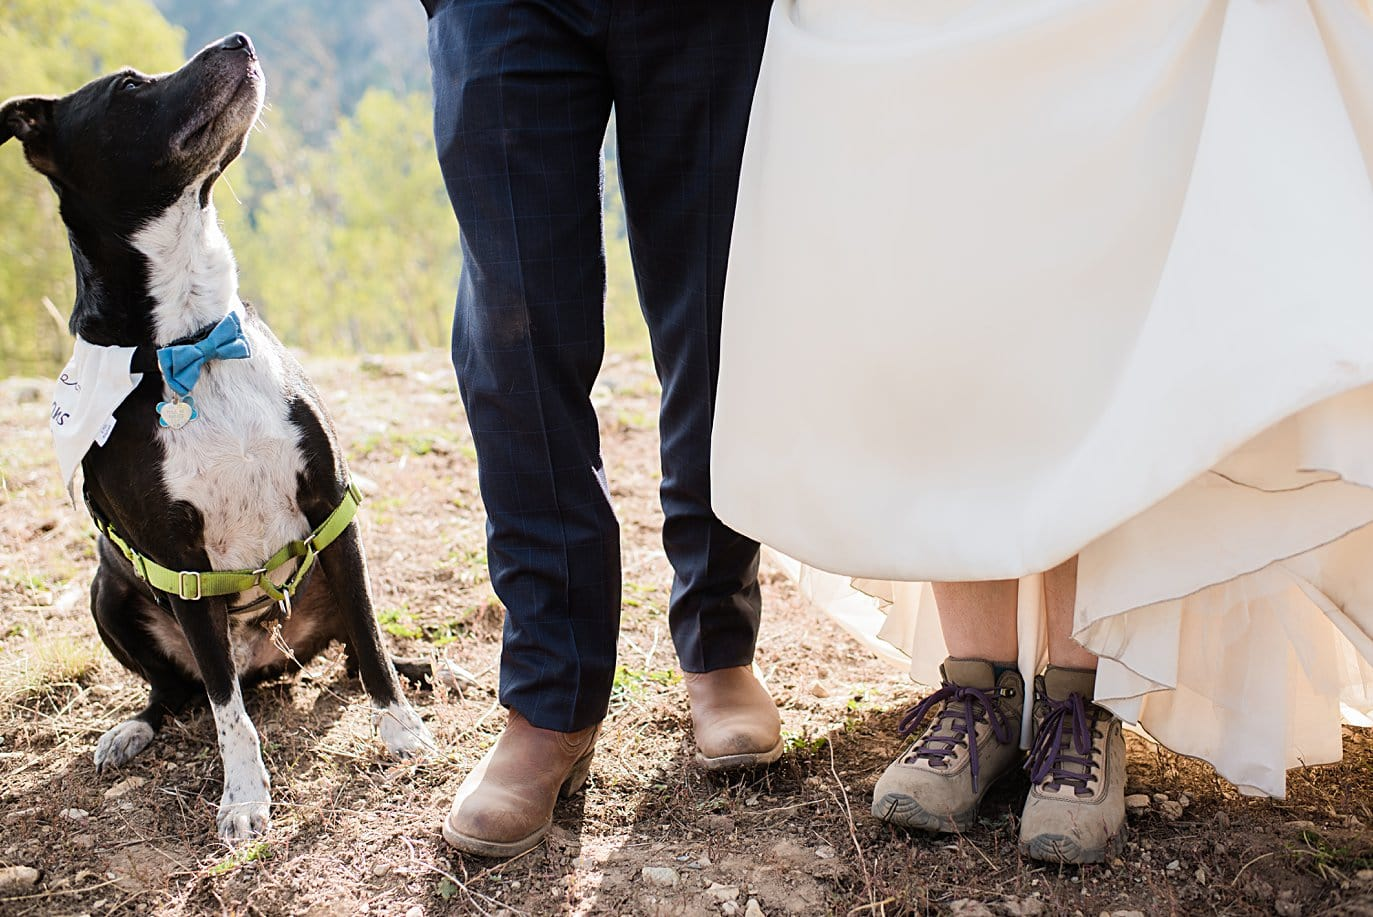 hiking boots under wedding dress on wedding day for Colorado elopement